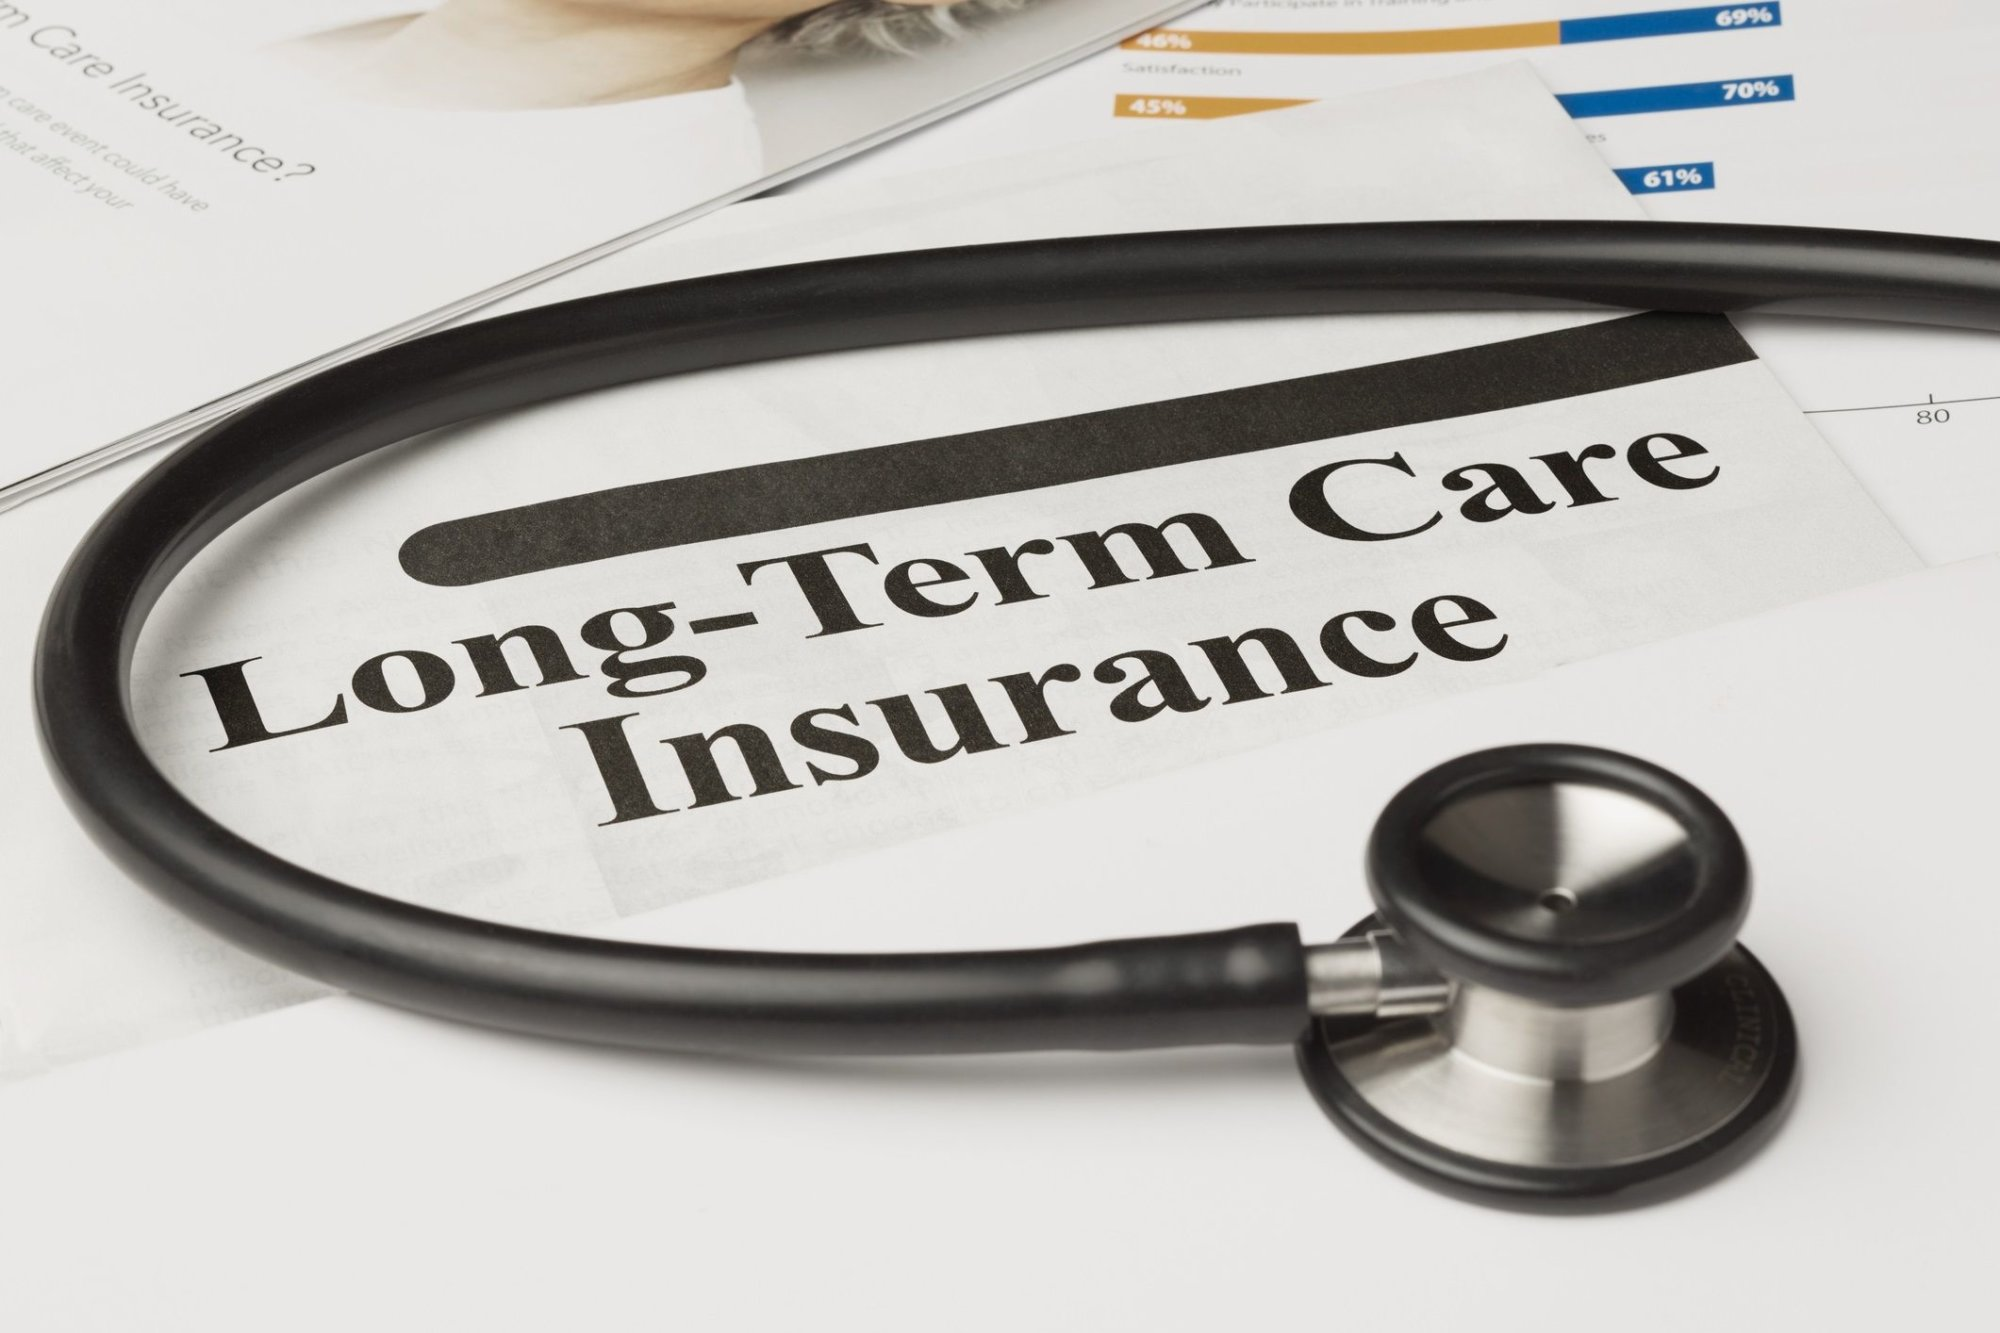 Health Care Insurance >> Weighing The Costs And Need For Long Term Care Insurance